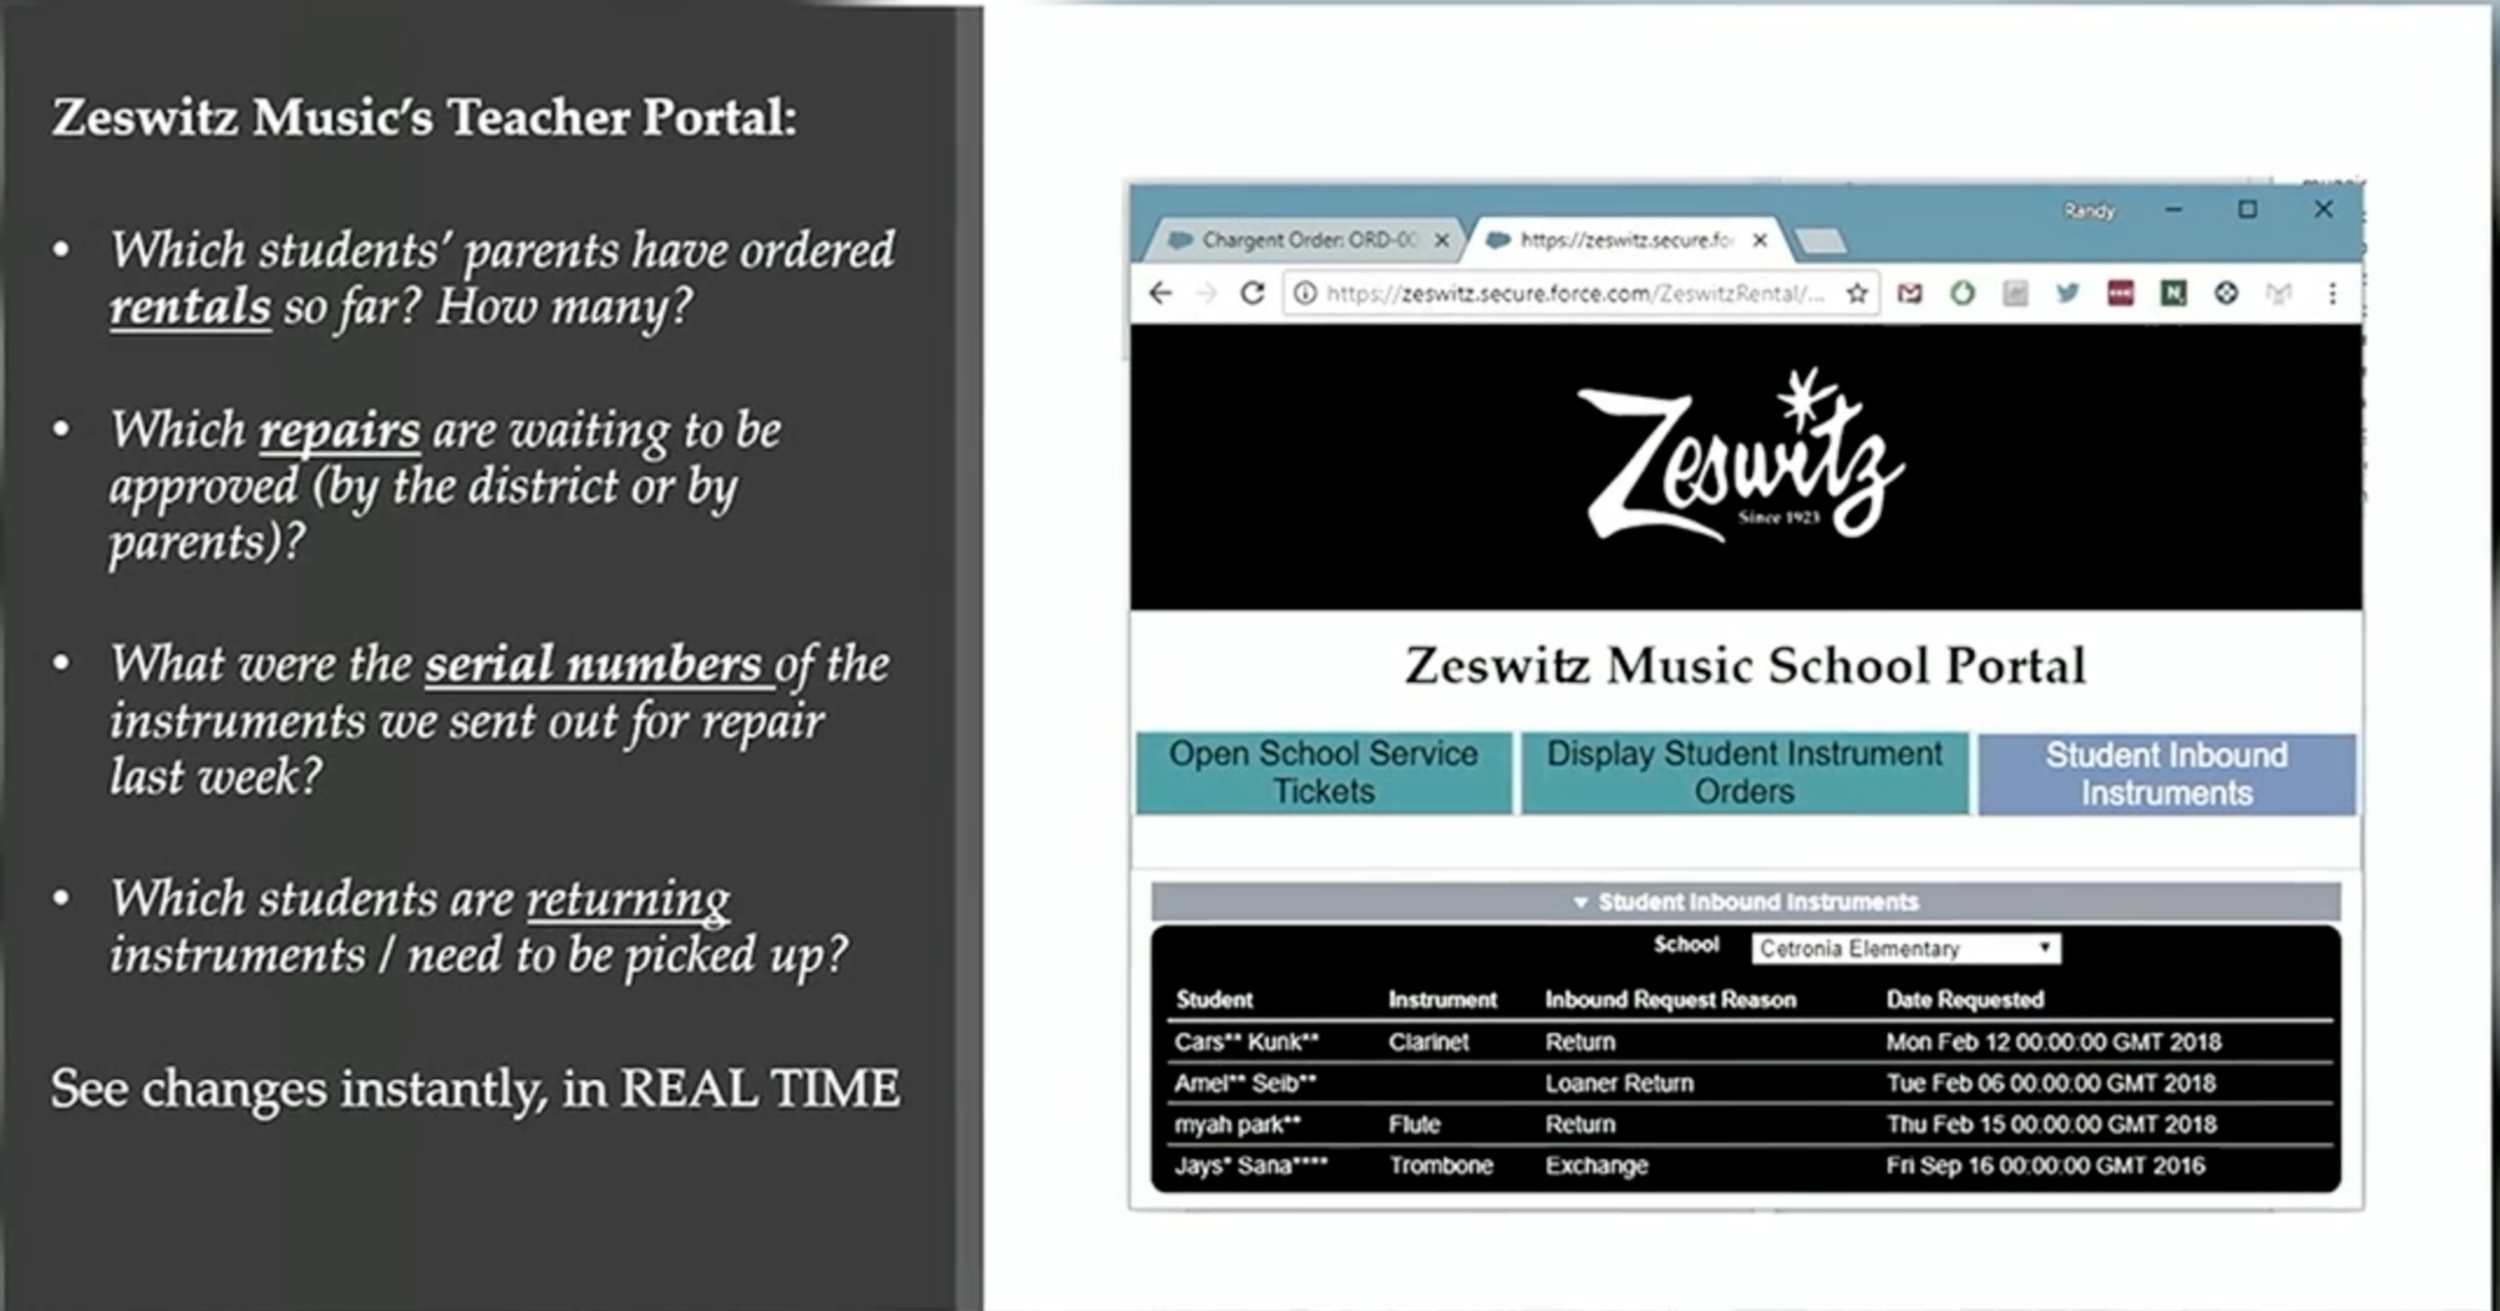 Preview of the Zeswitz Music School Portal, the platform that earned Zeswitz Music the 2019 NAMM Innovation Award.